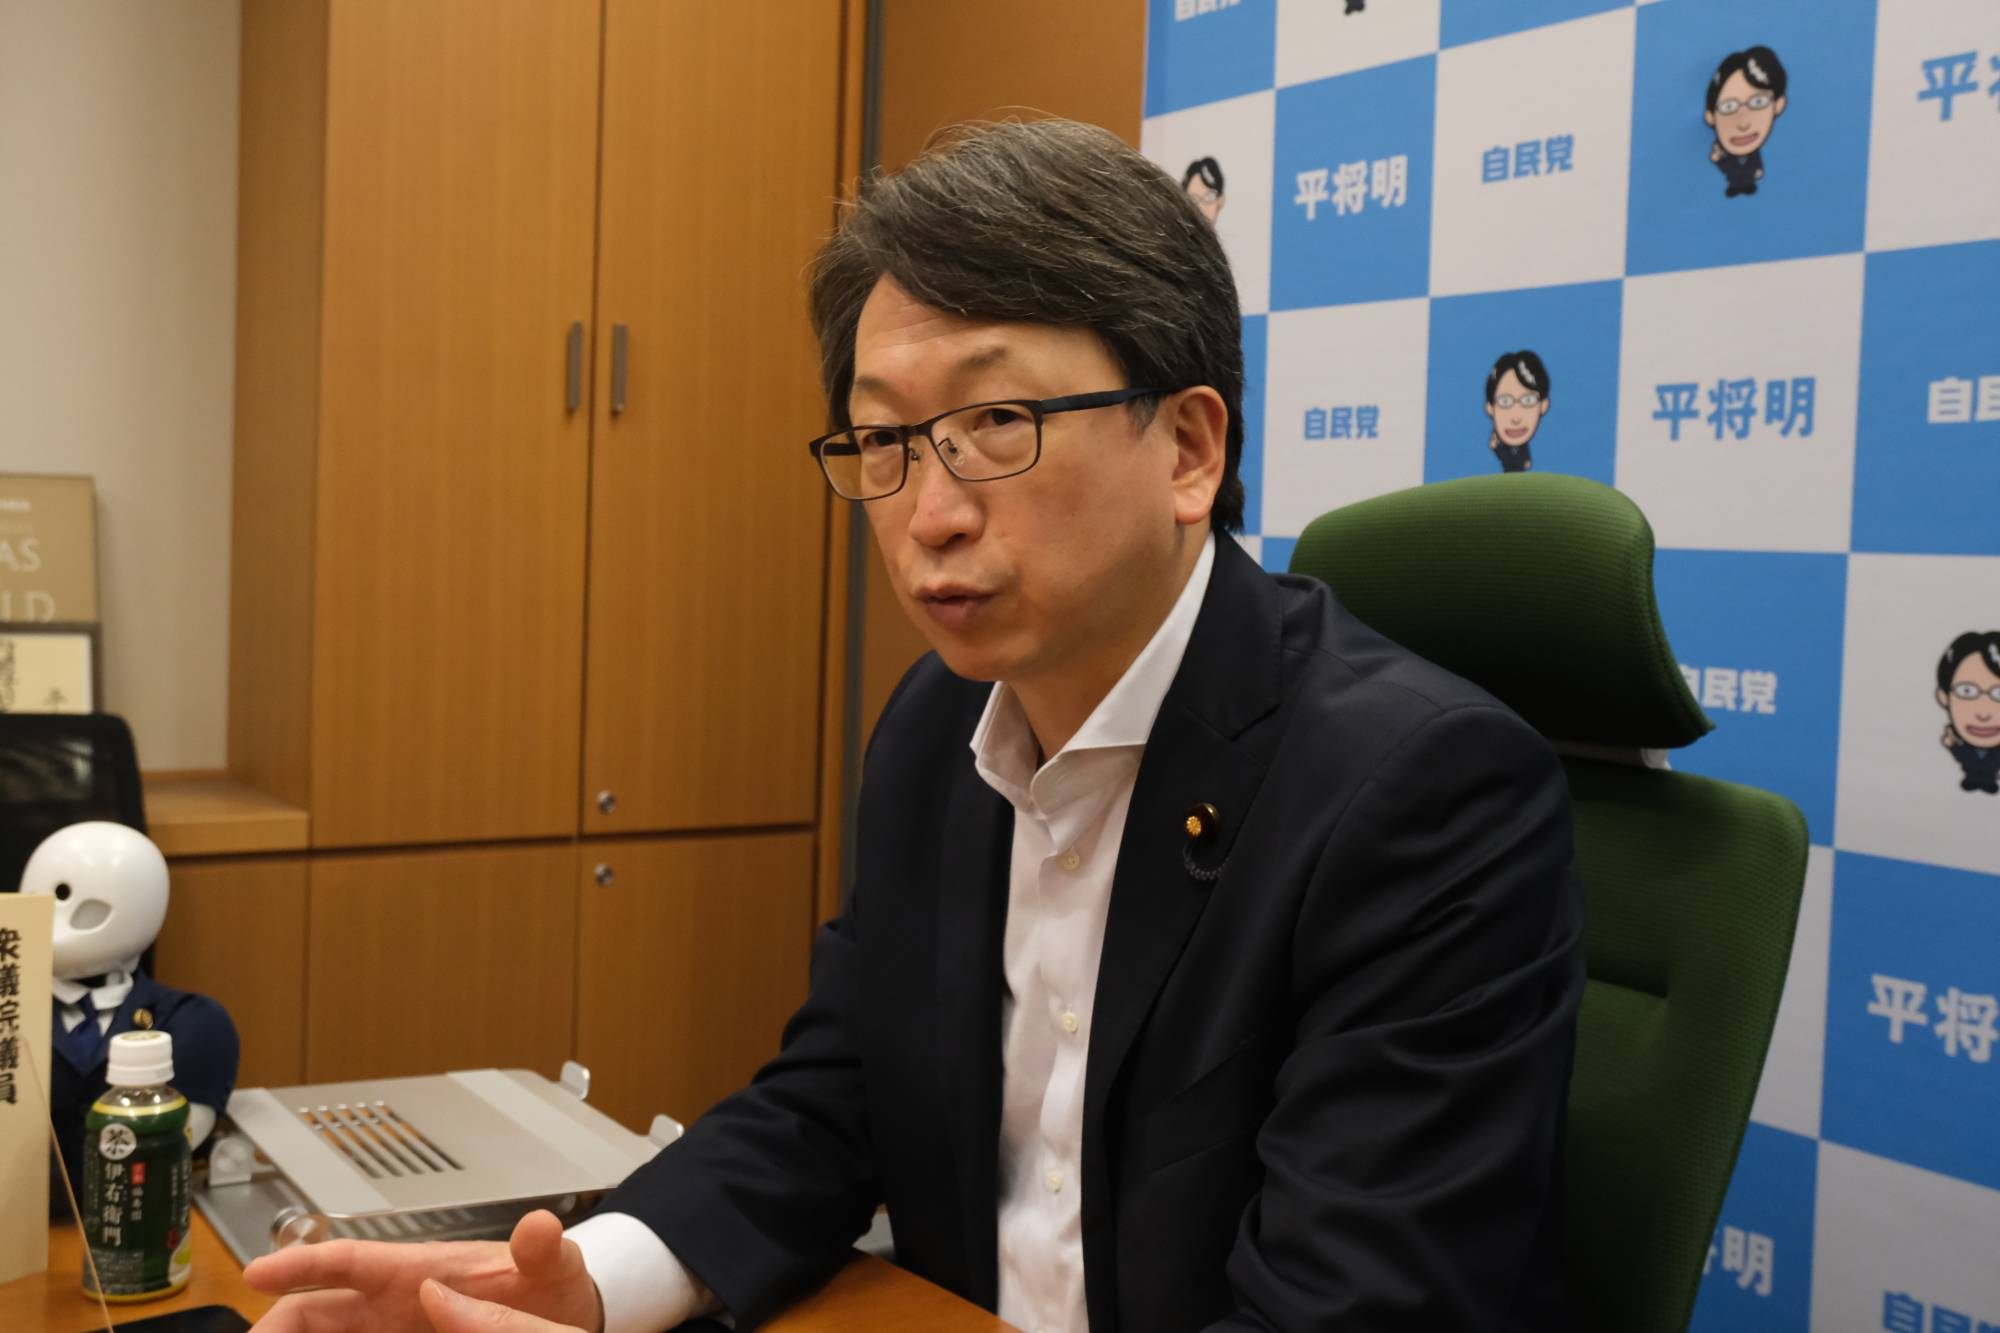 Masaaki Taira, former state minister of Cabinet Office in charge of information technology policy, speaks during an interview in August in Tokyo. | KAZUAKI NAGATA